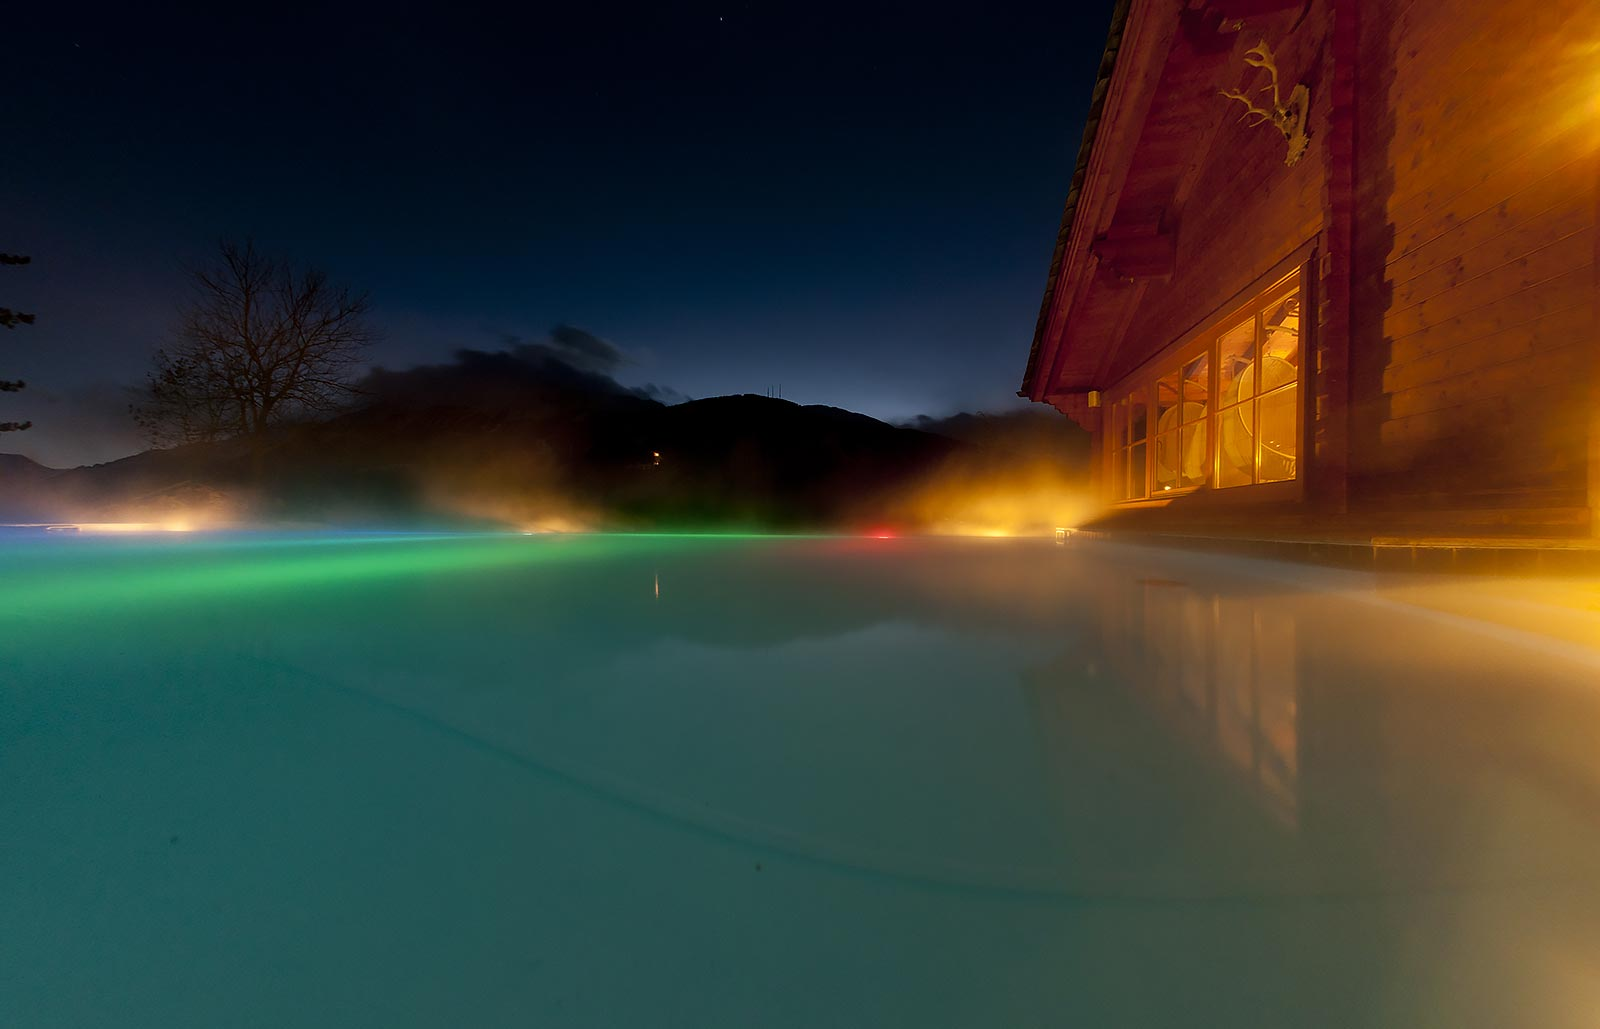 Hot water tub with lights on the outside of a wooden alpine house